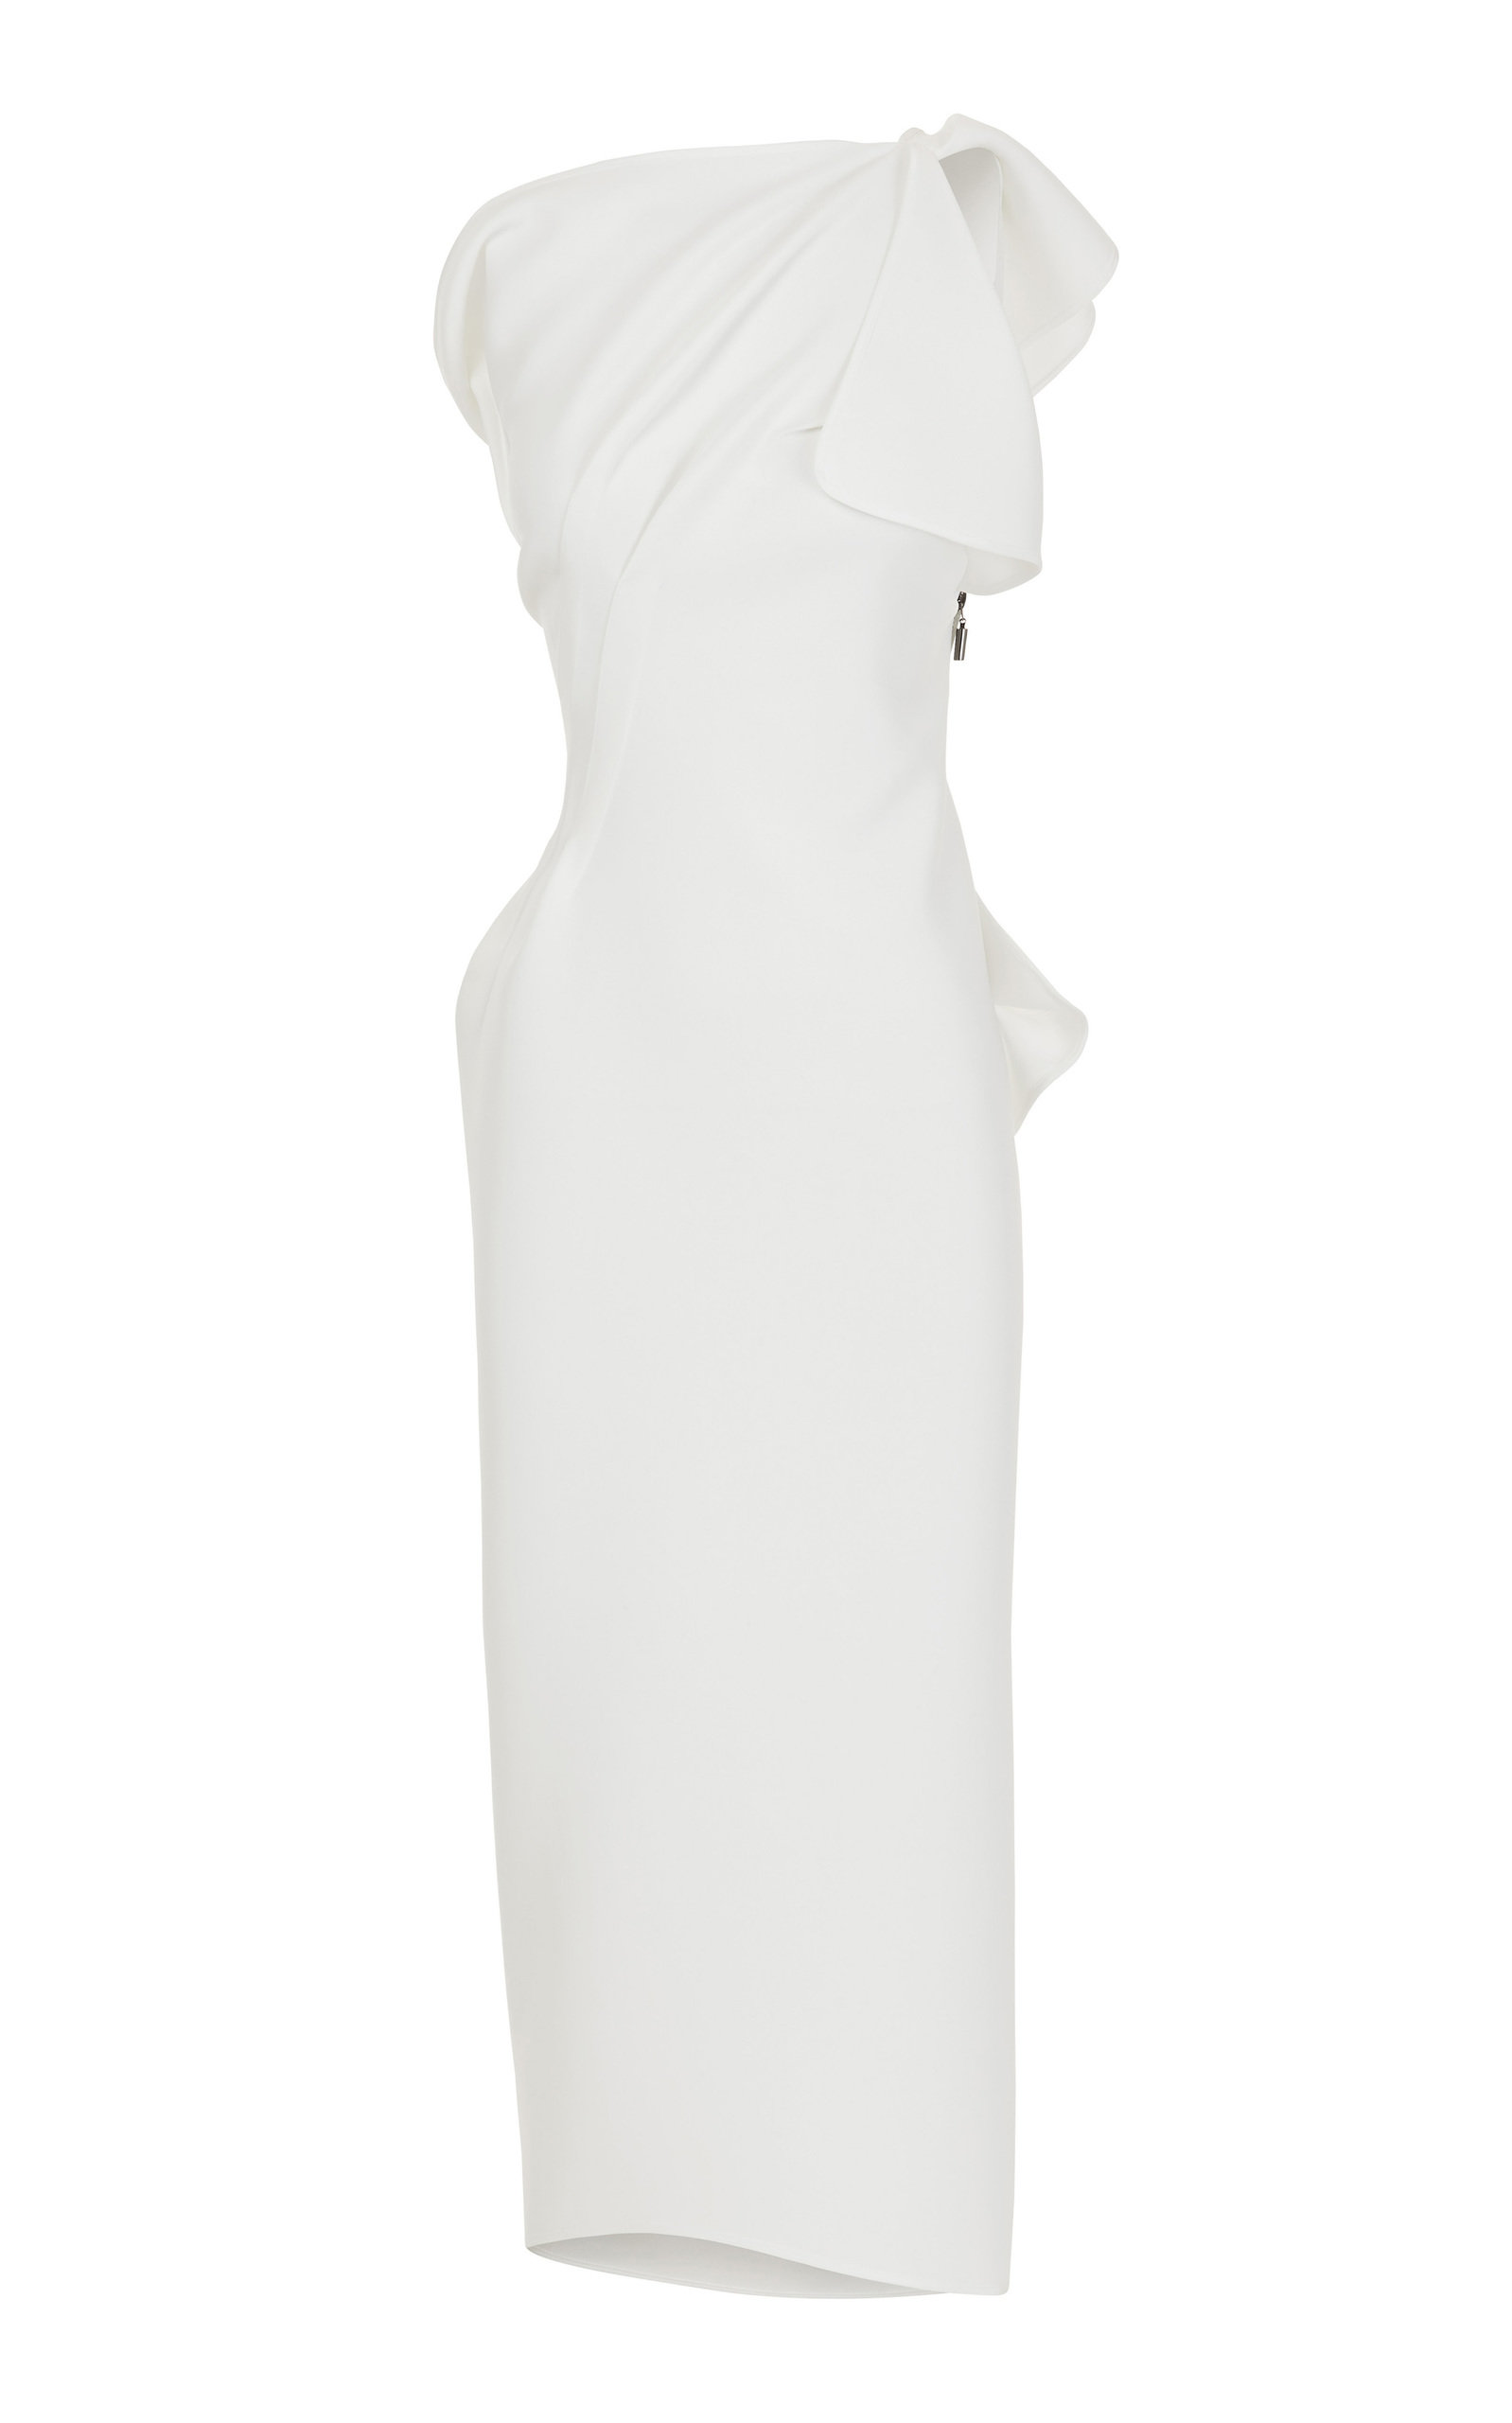 Buy Maticevski Atomished Gathered Cady Midi Dress online, shop Maticevski at the best price